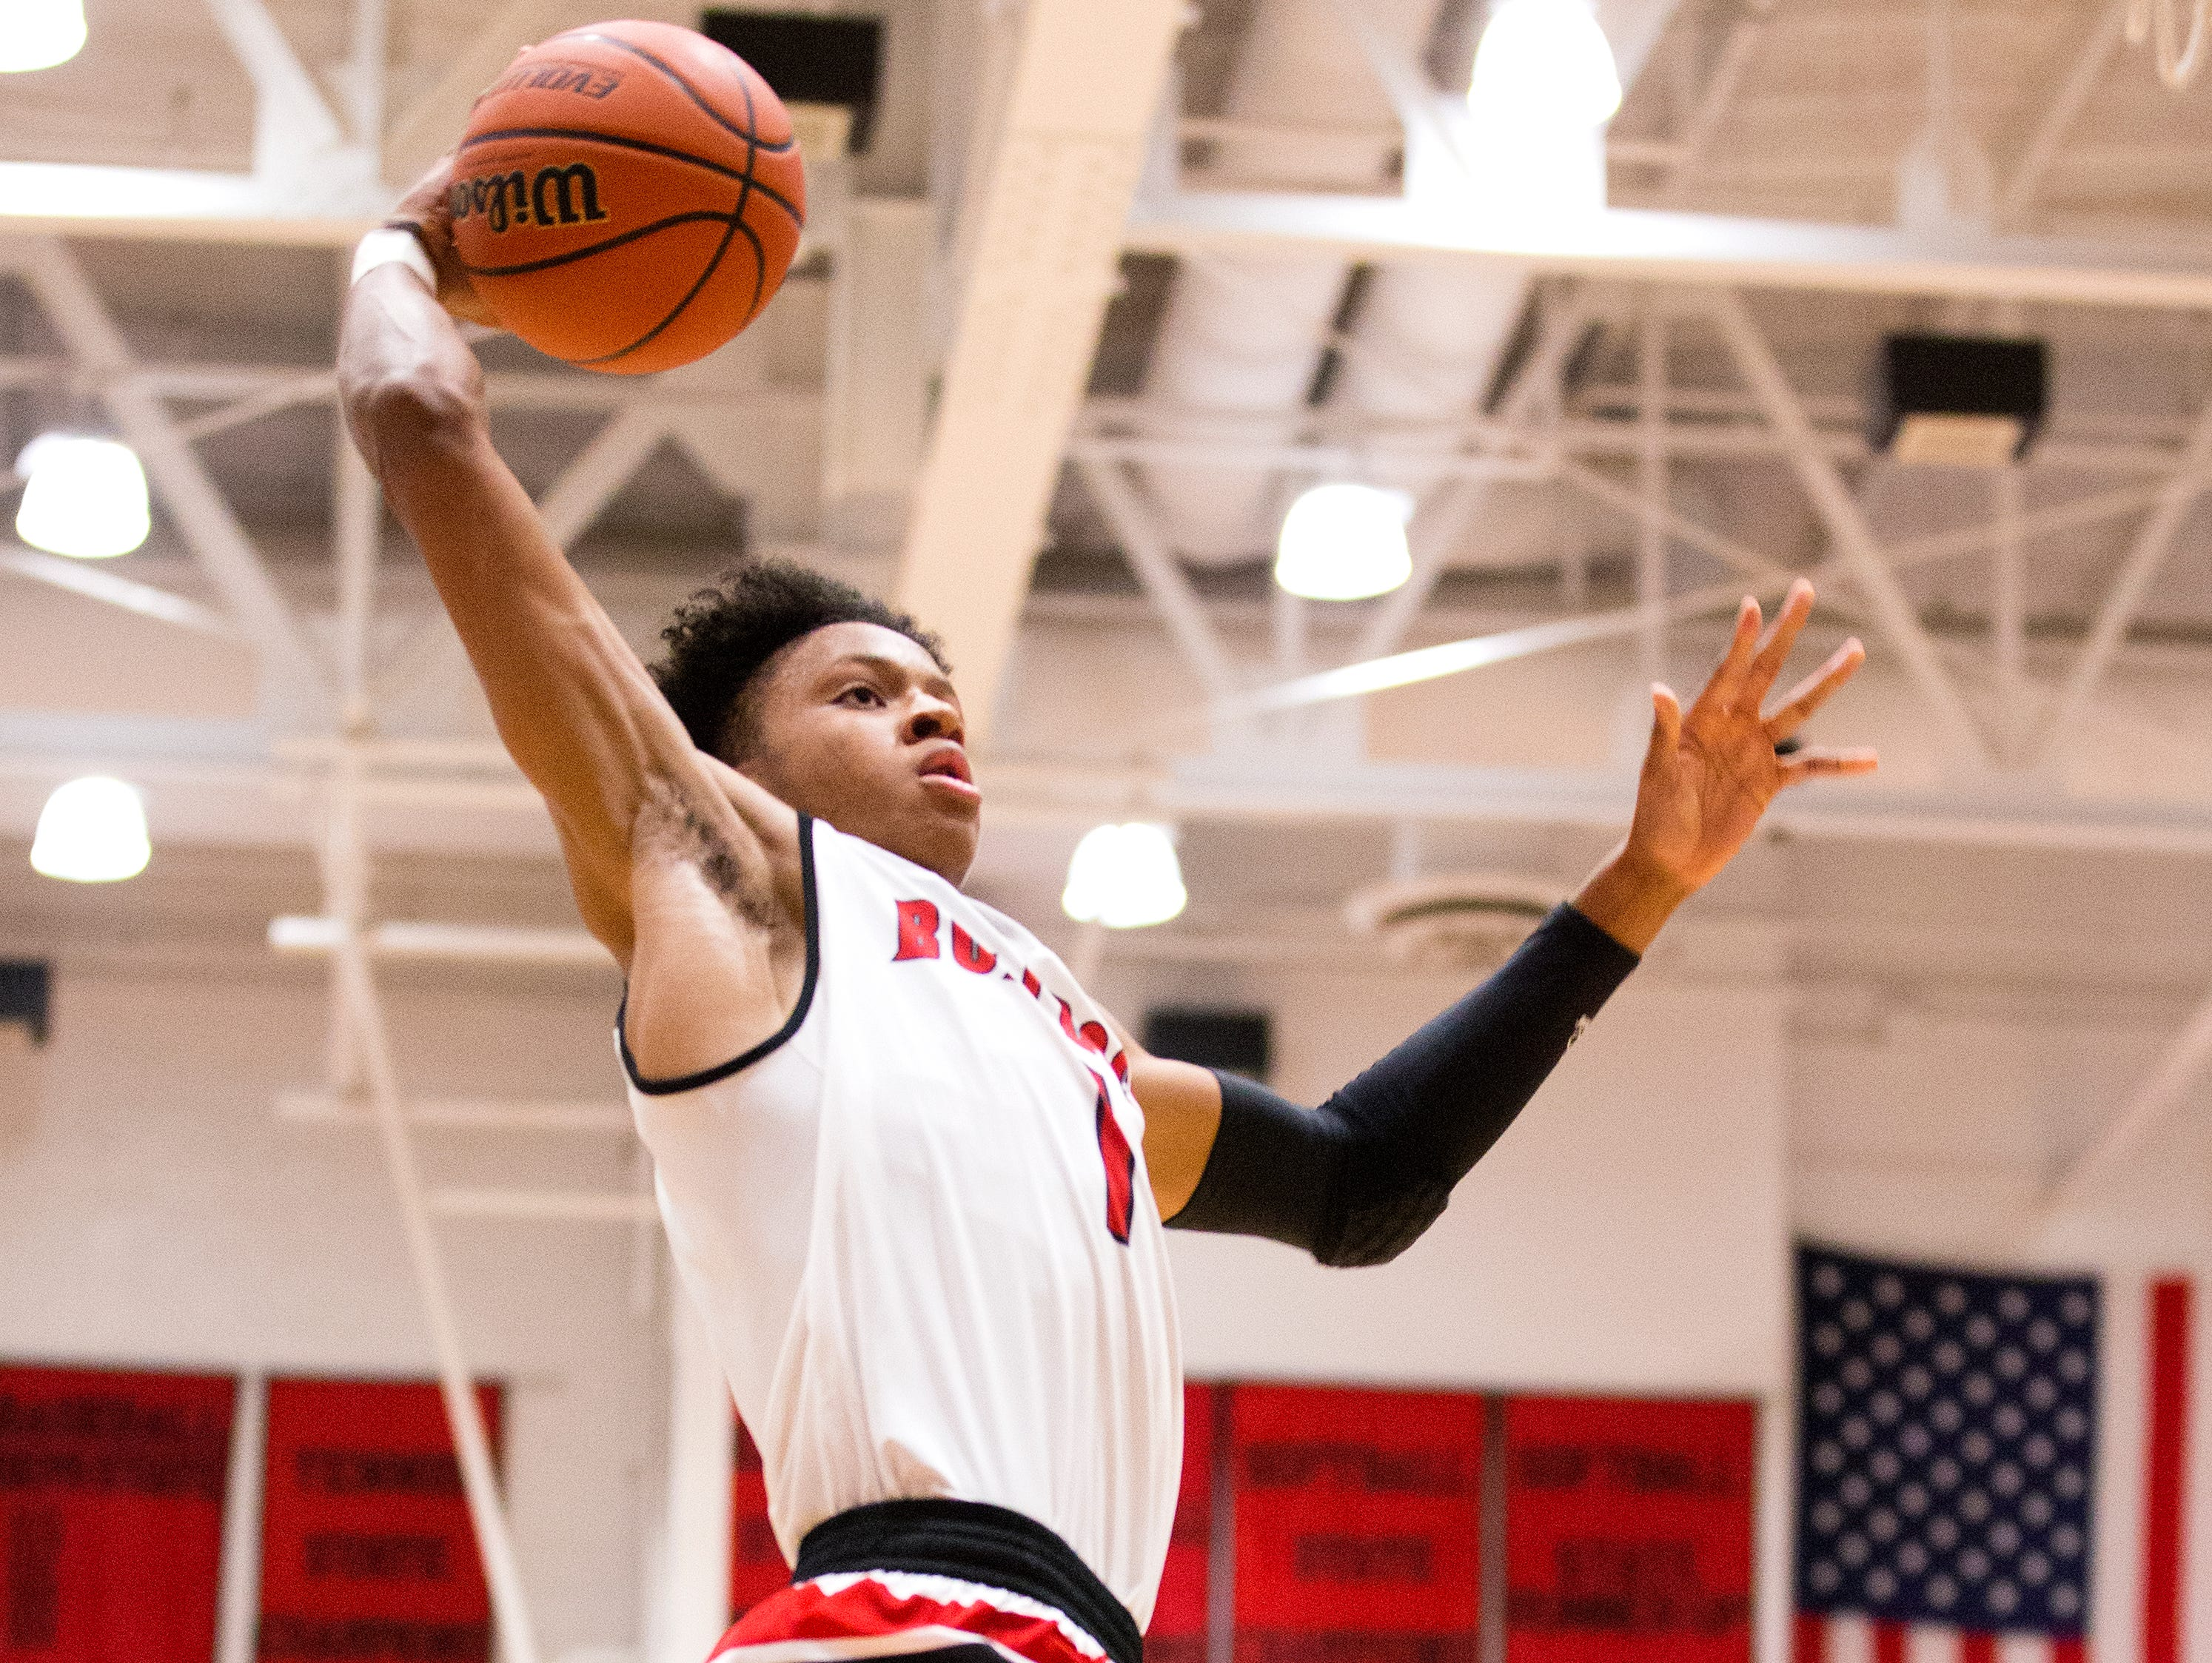 New Albany's Romeo Langford (1) dunks the ball during the game between New Albany and Evansville Bosse at New Albany High School.